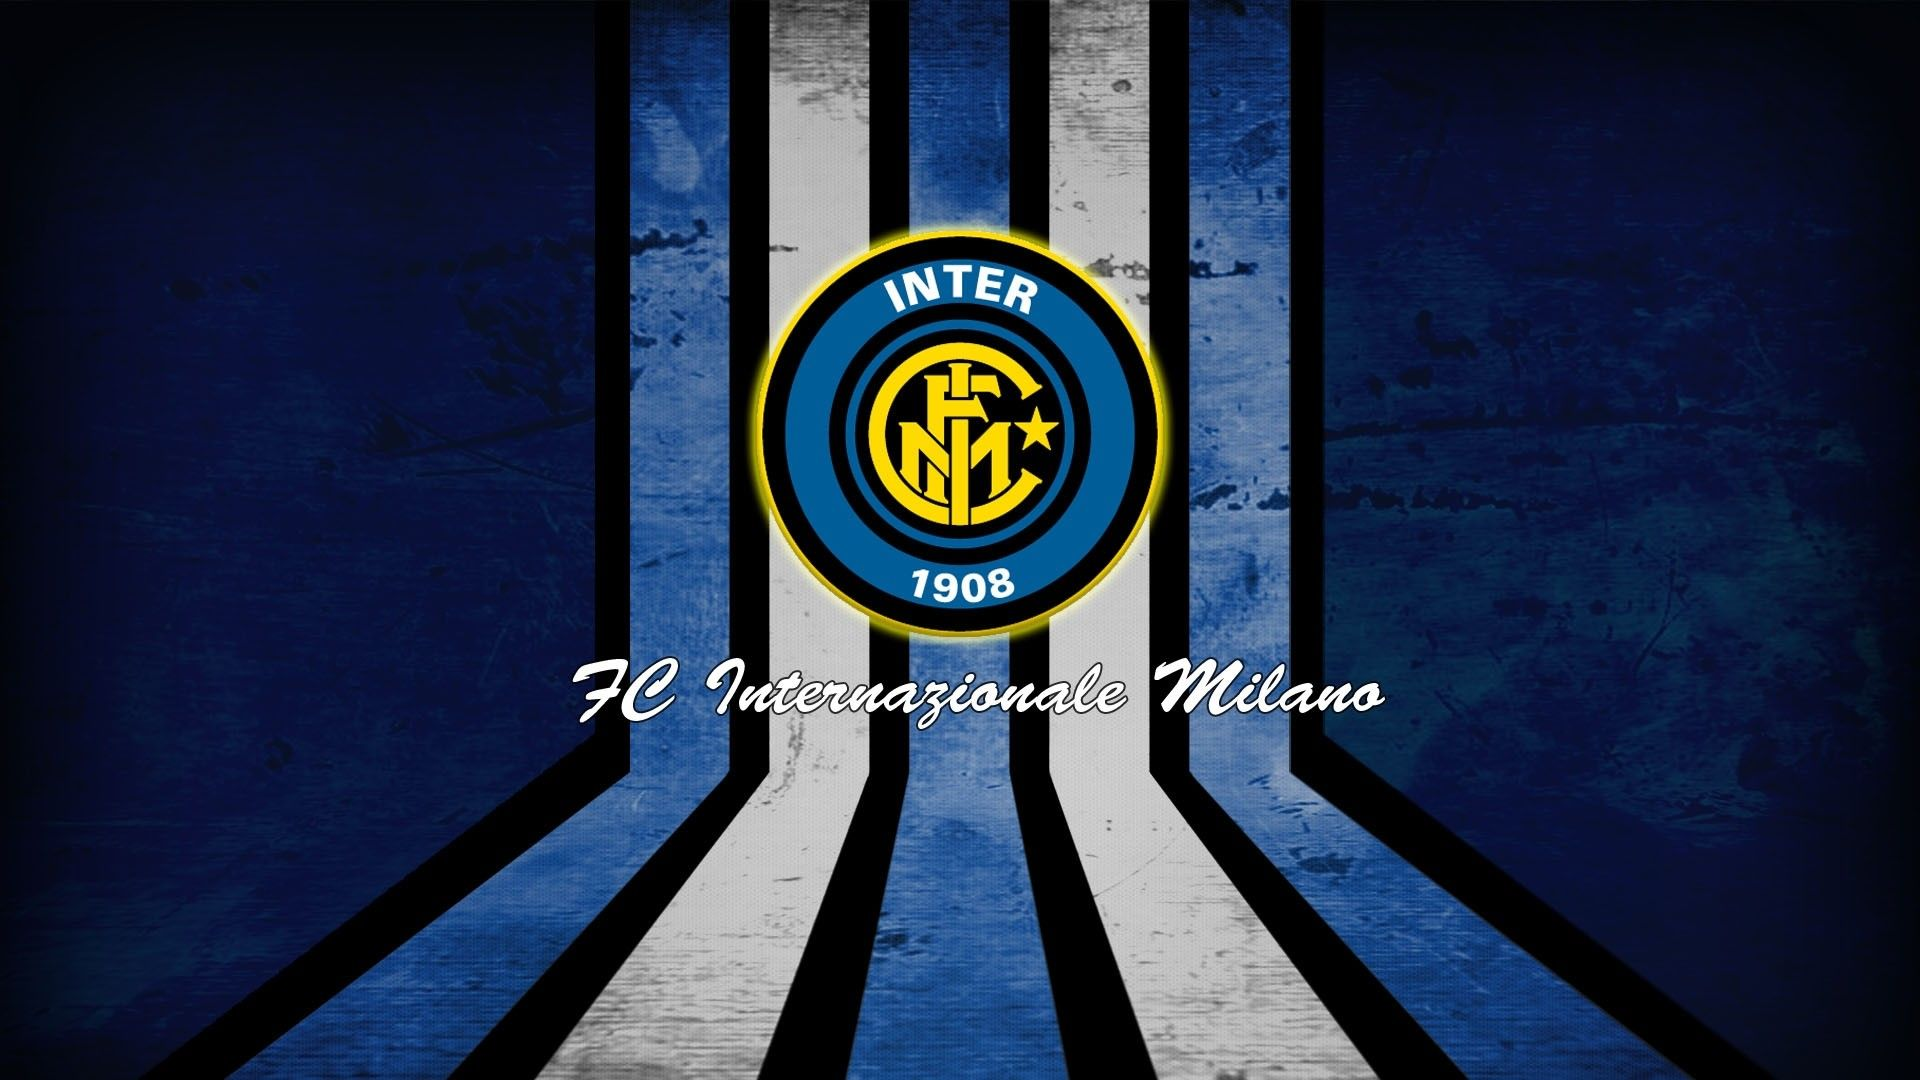 Inter Milan Wallpaper Hd Soccer Desktop Inter Milan Sports Painting Milan Wallpaper